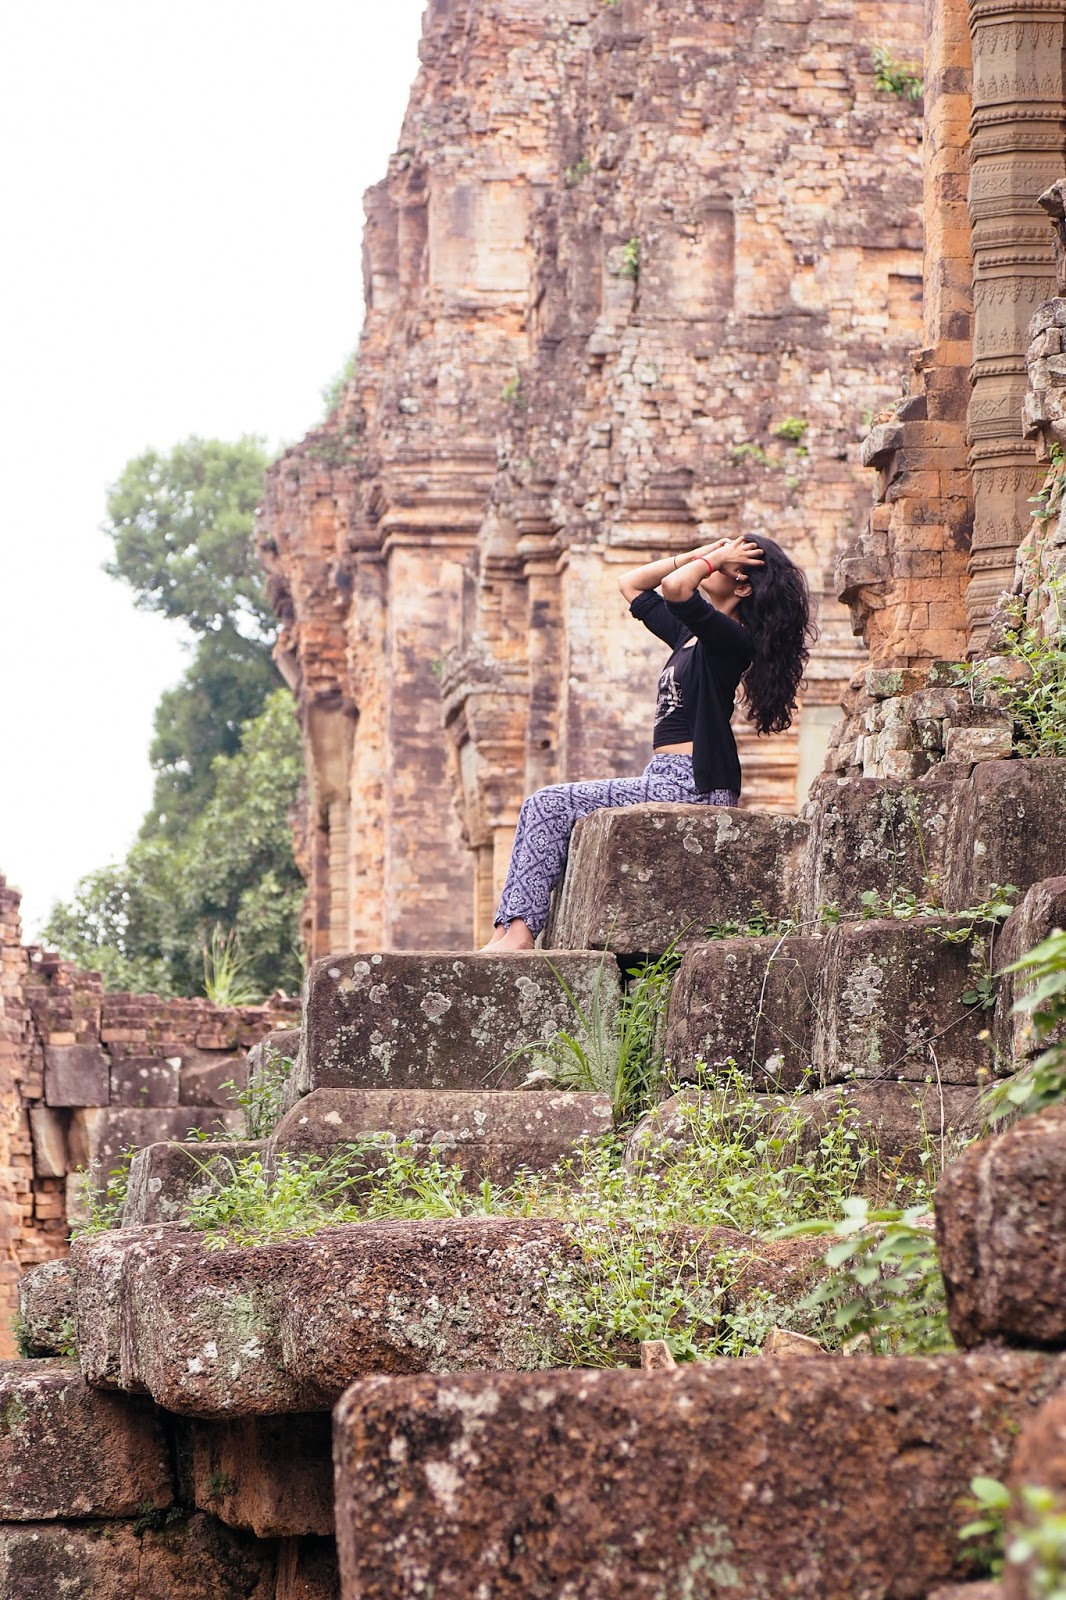 Temple hopping in Siem Reap